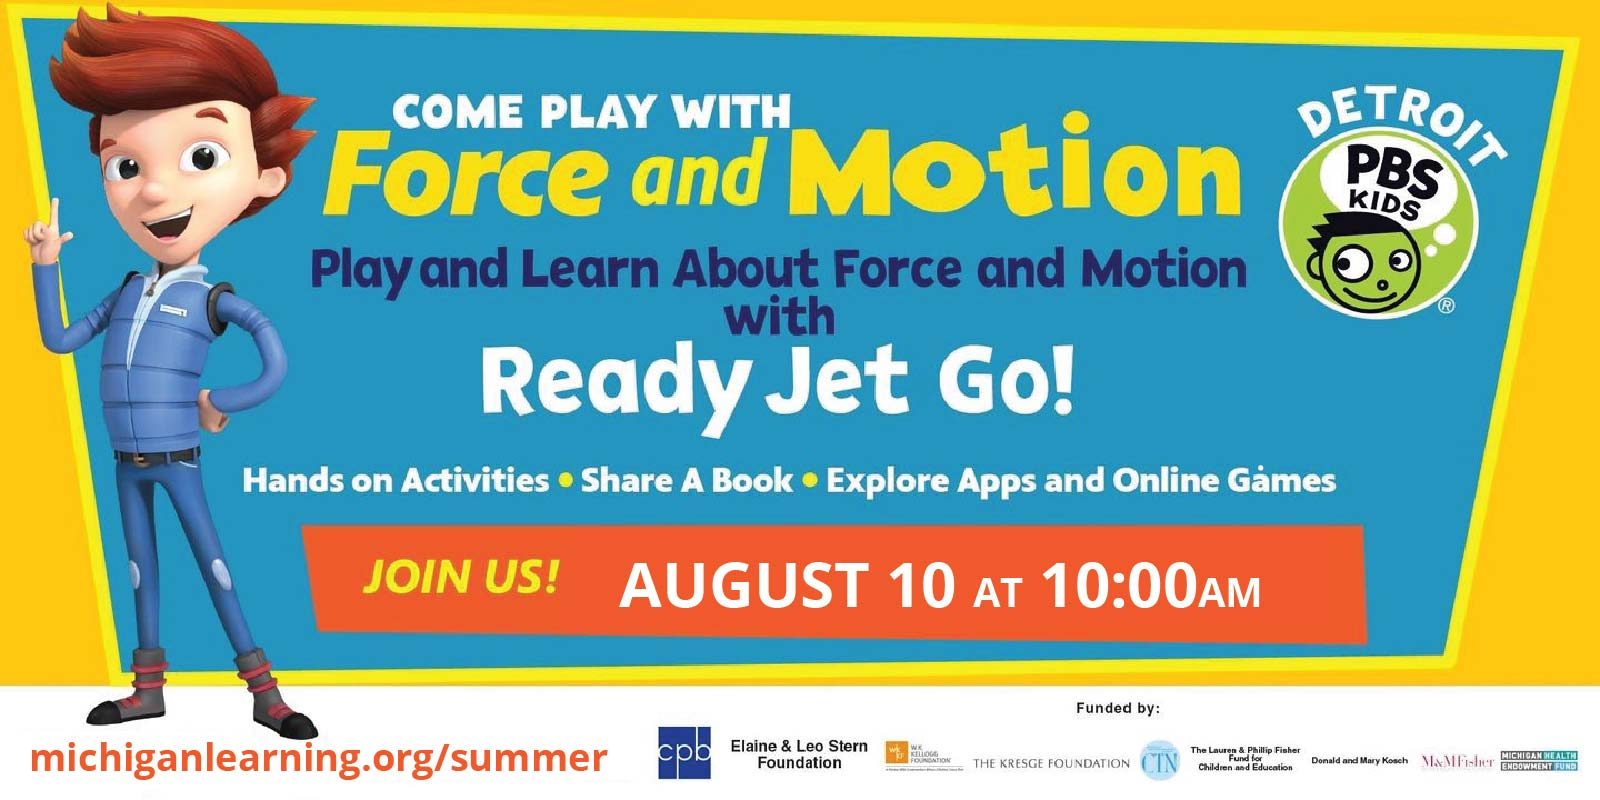 Force and Motion with Ready Jet Go, Detroit PBS Kids, and Michigan Learning CHannel